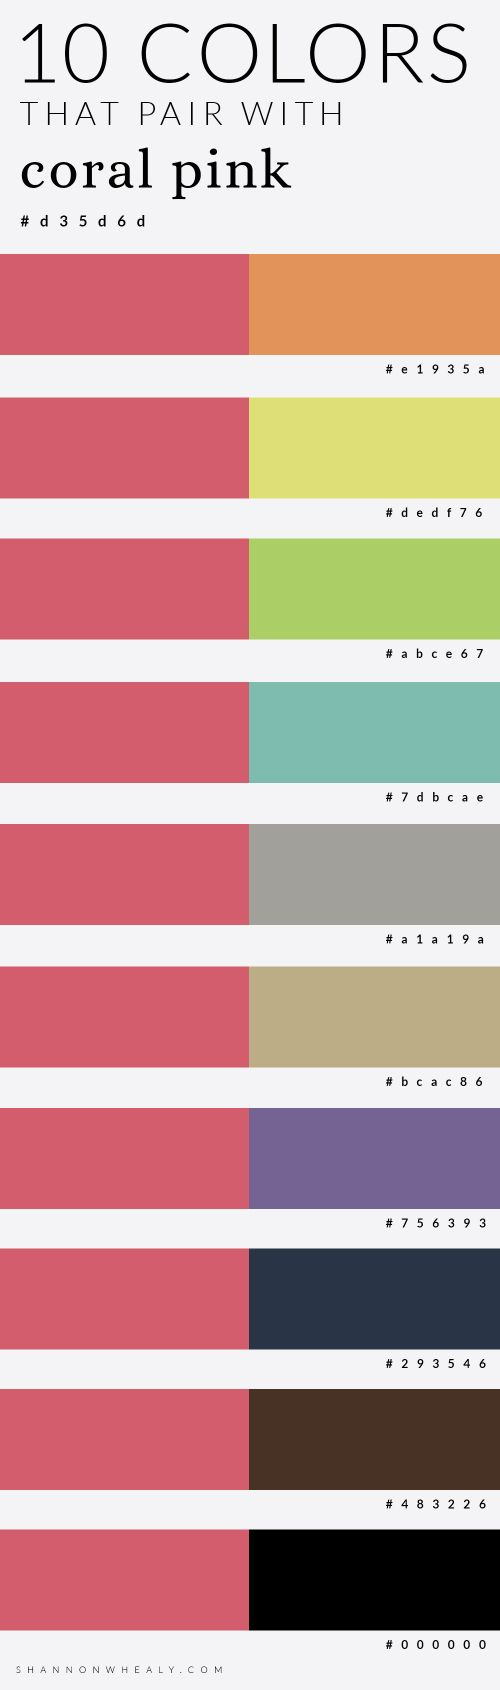 10 Colors That Pair with Coral Pink